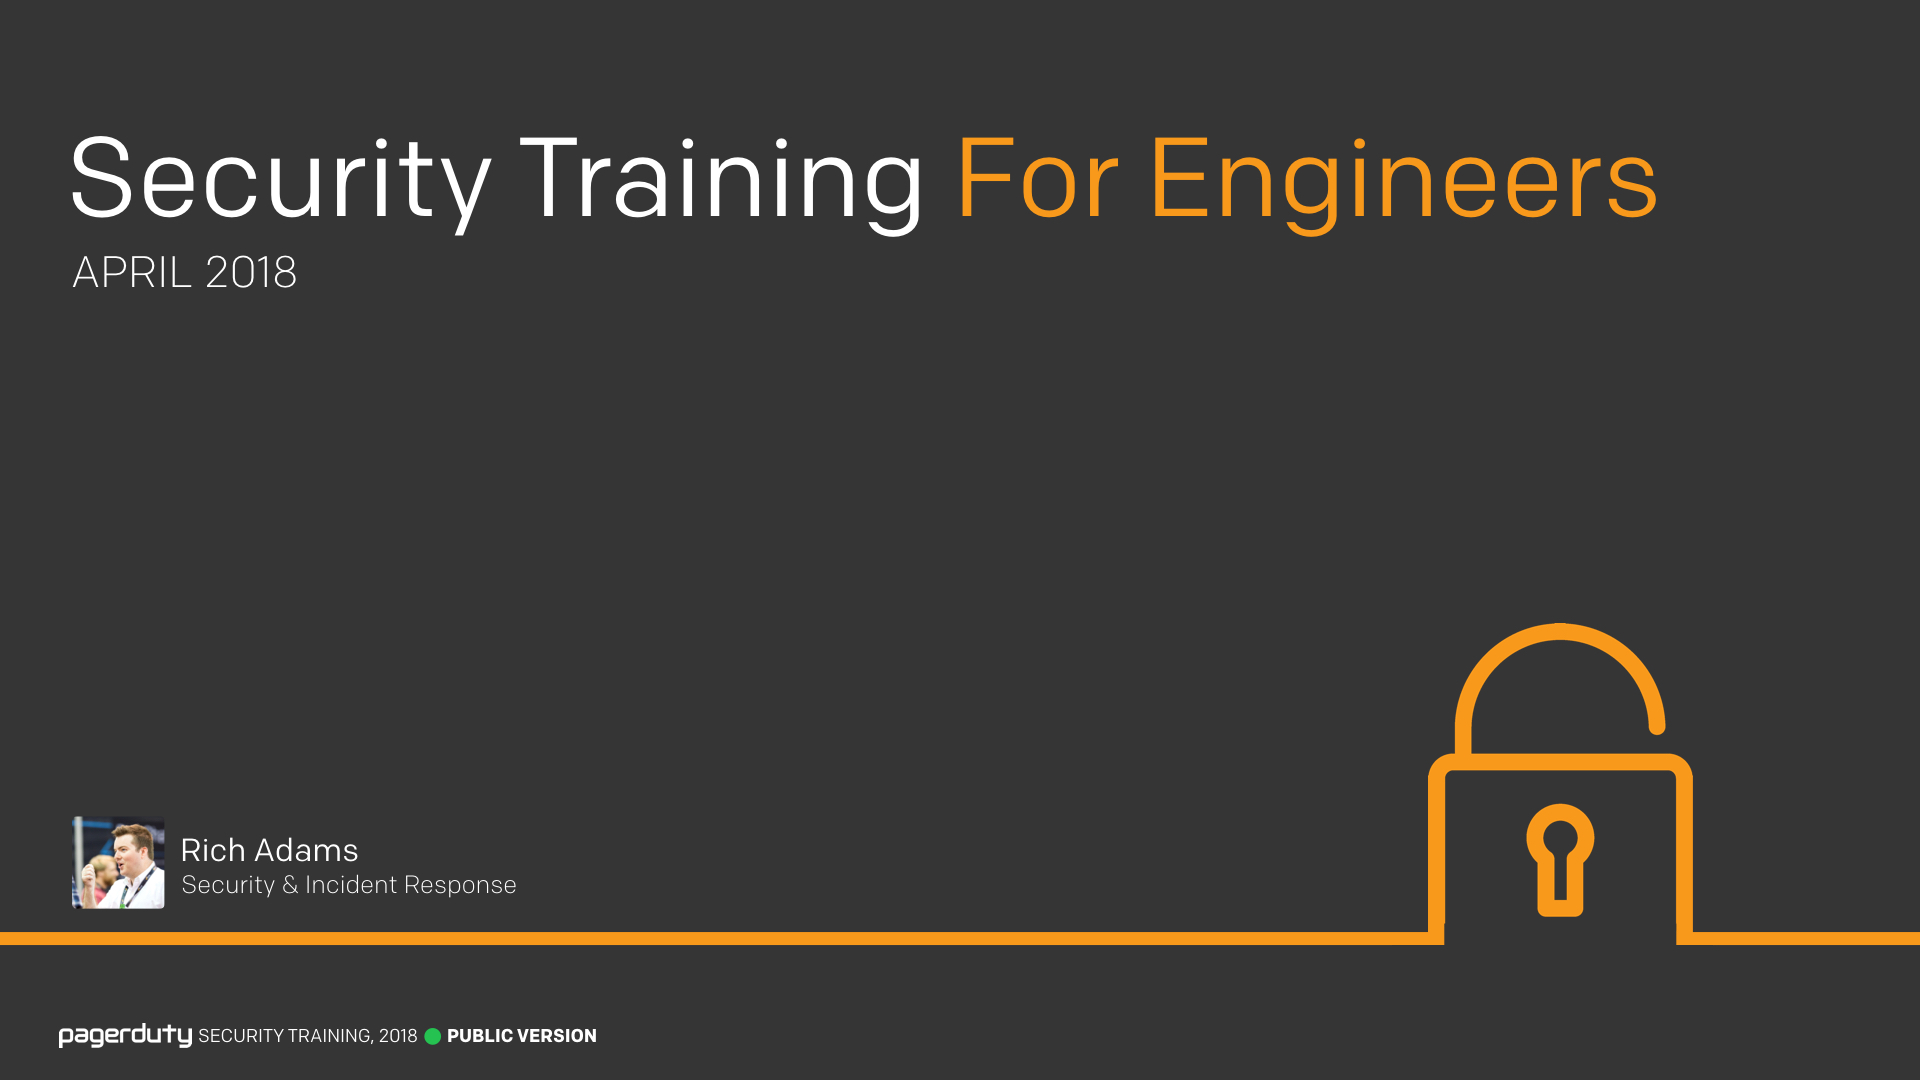 Security Training For Engineers